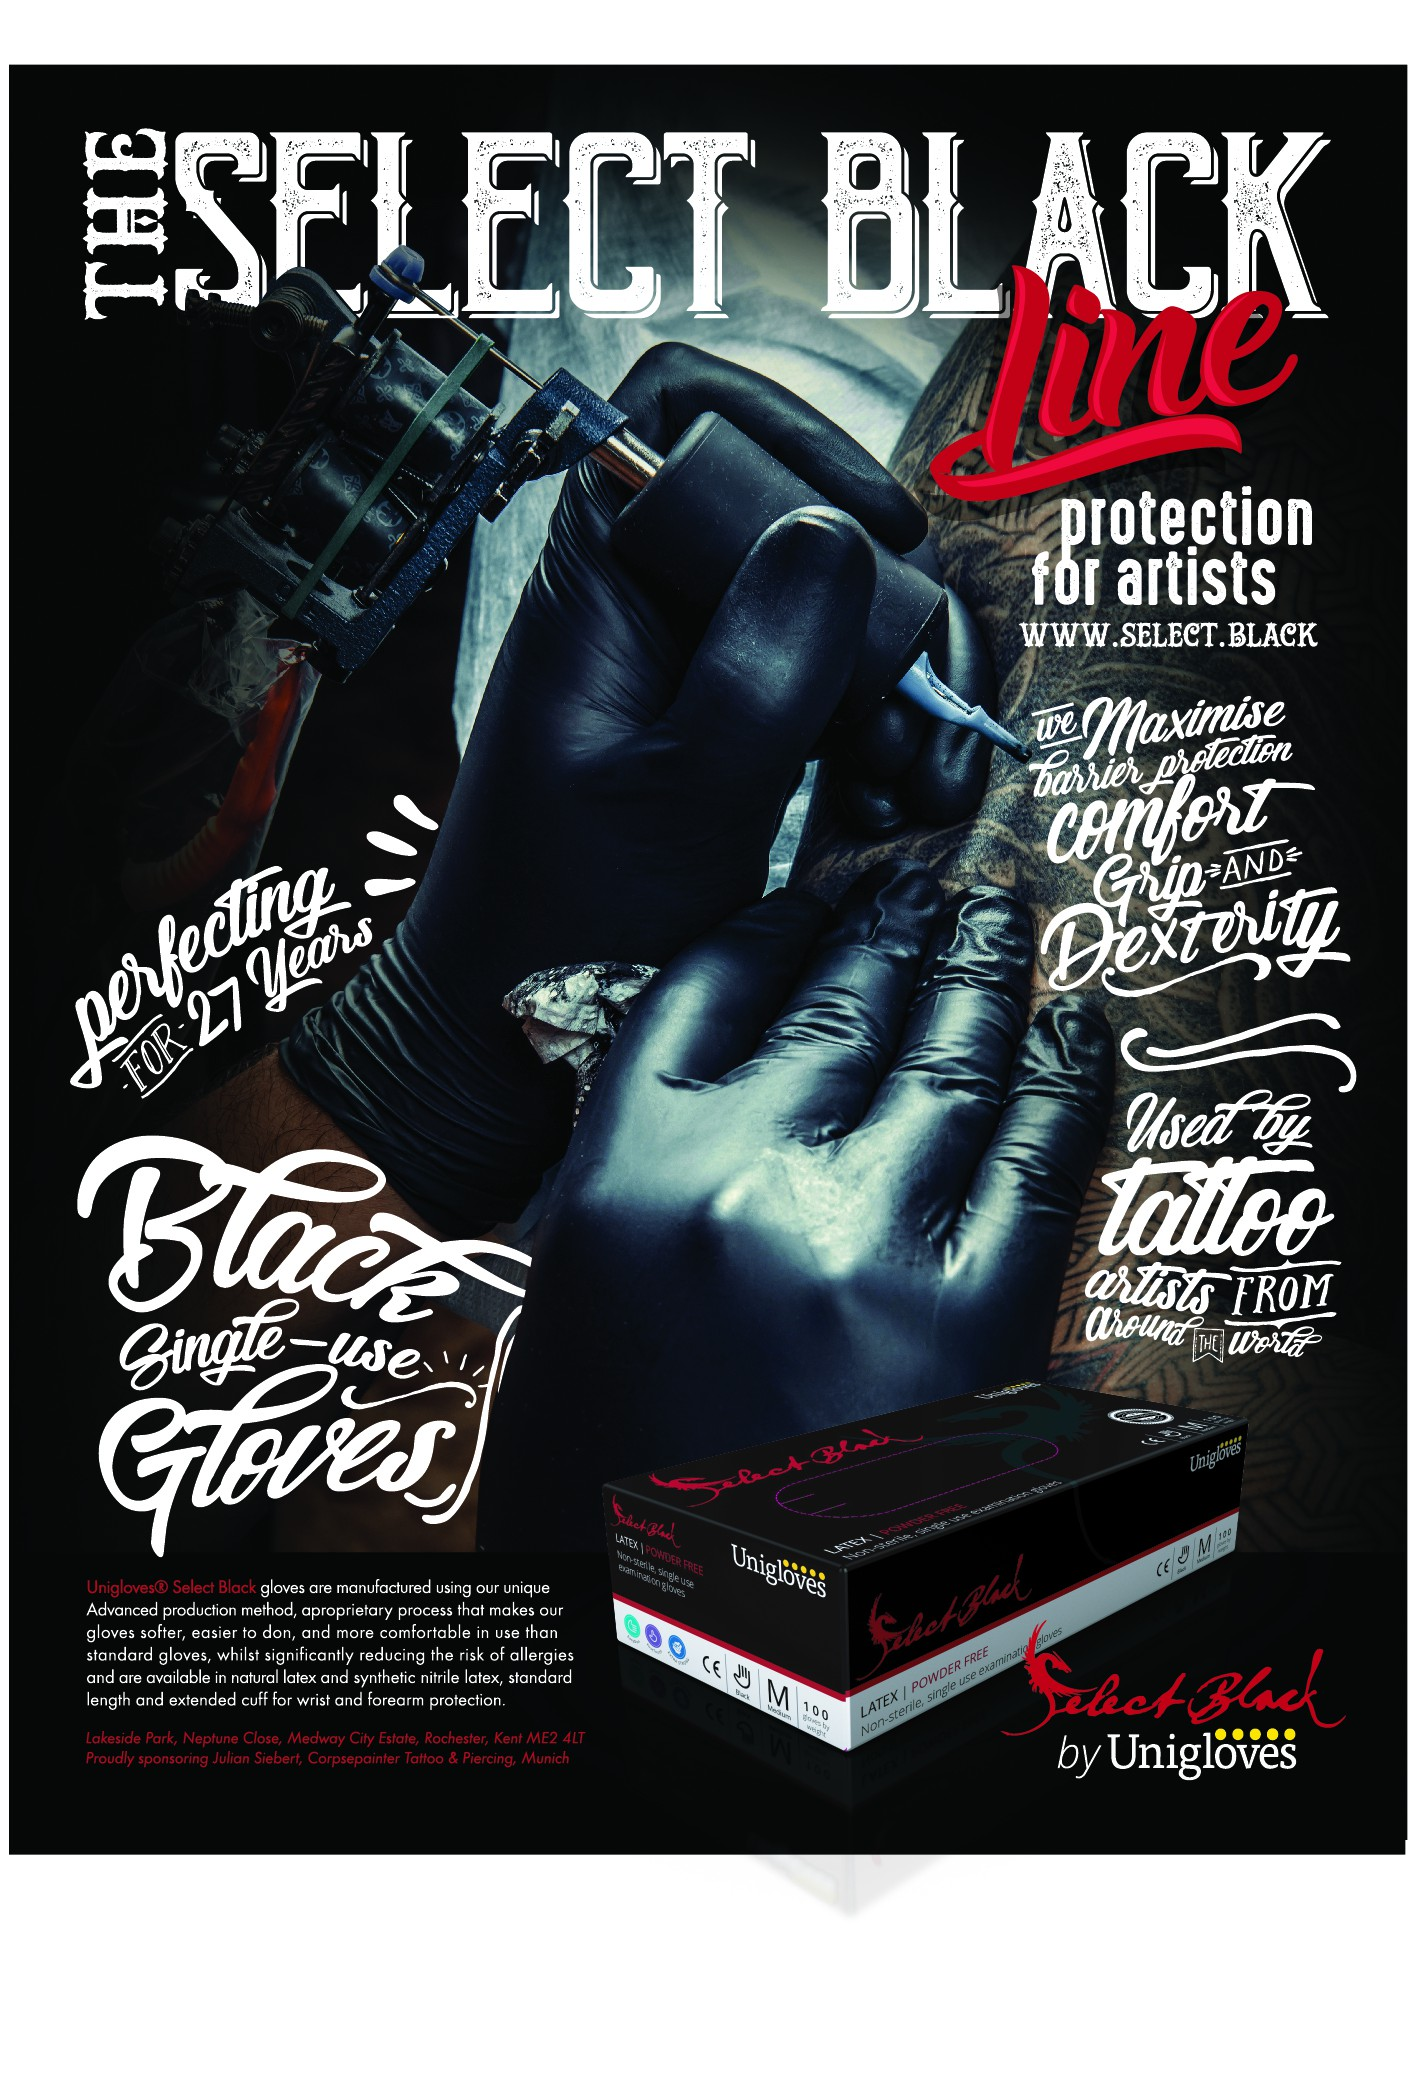 To inform end users (tattoo artists) about the Select Black range of tattoo specific products